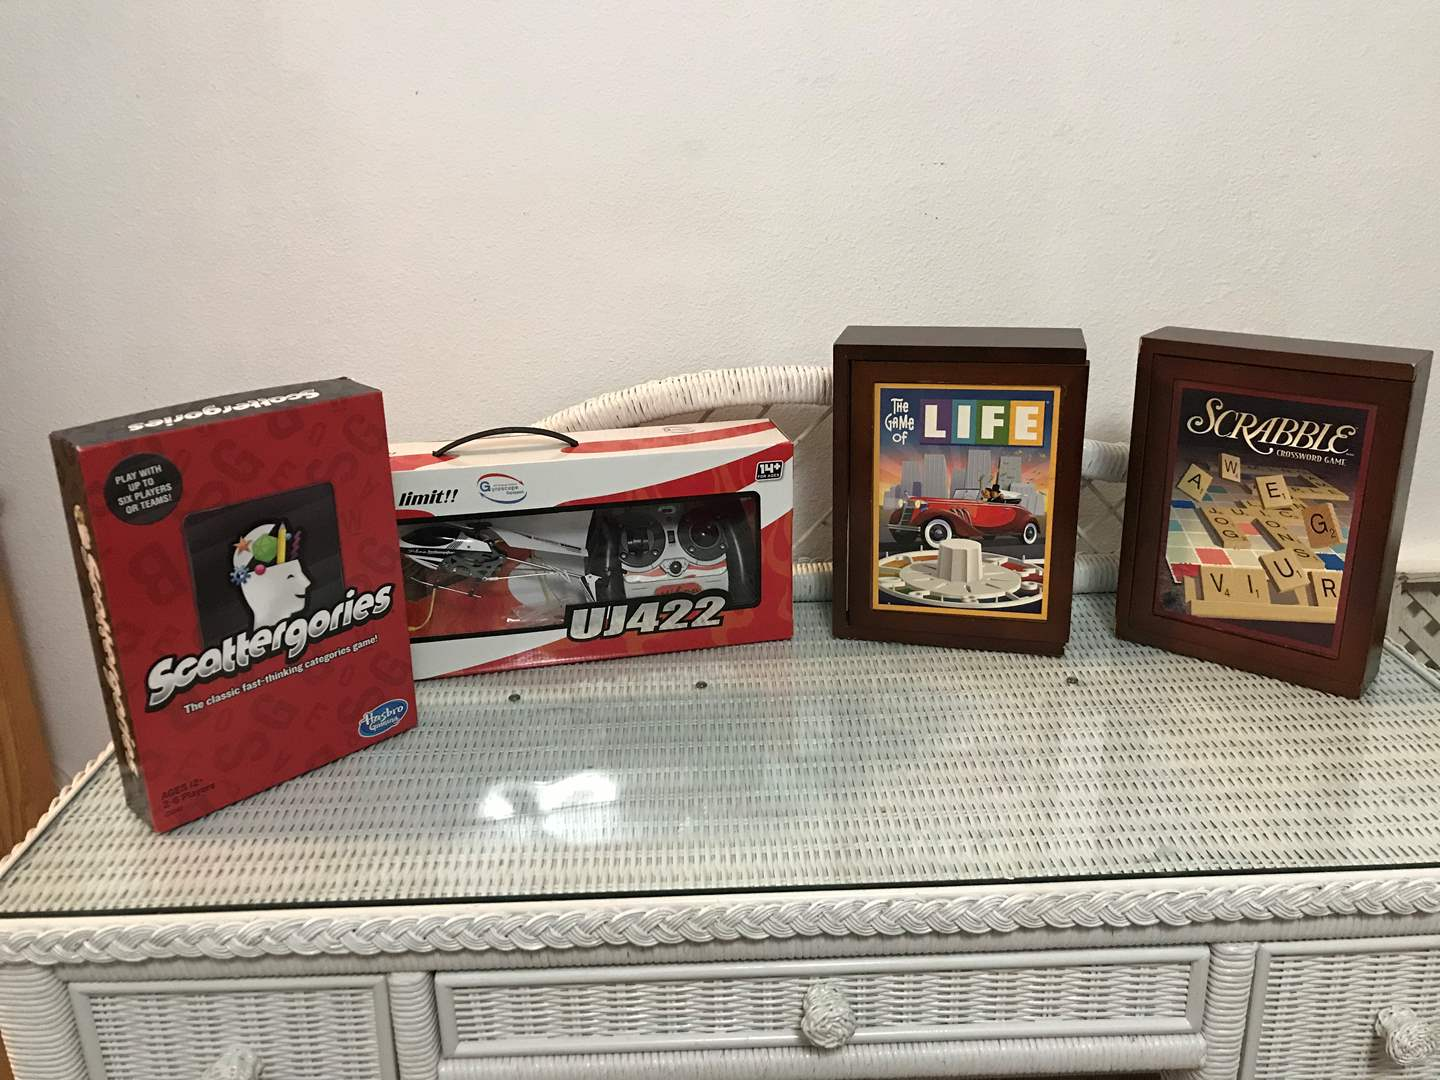 Lot # 150 - Older Teenager/Adult Games, UJ422 3.5 Channel RC Helicopter (main image)